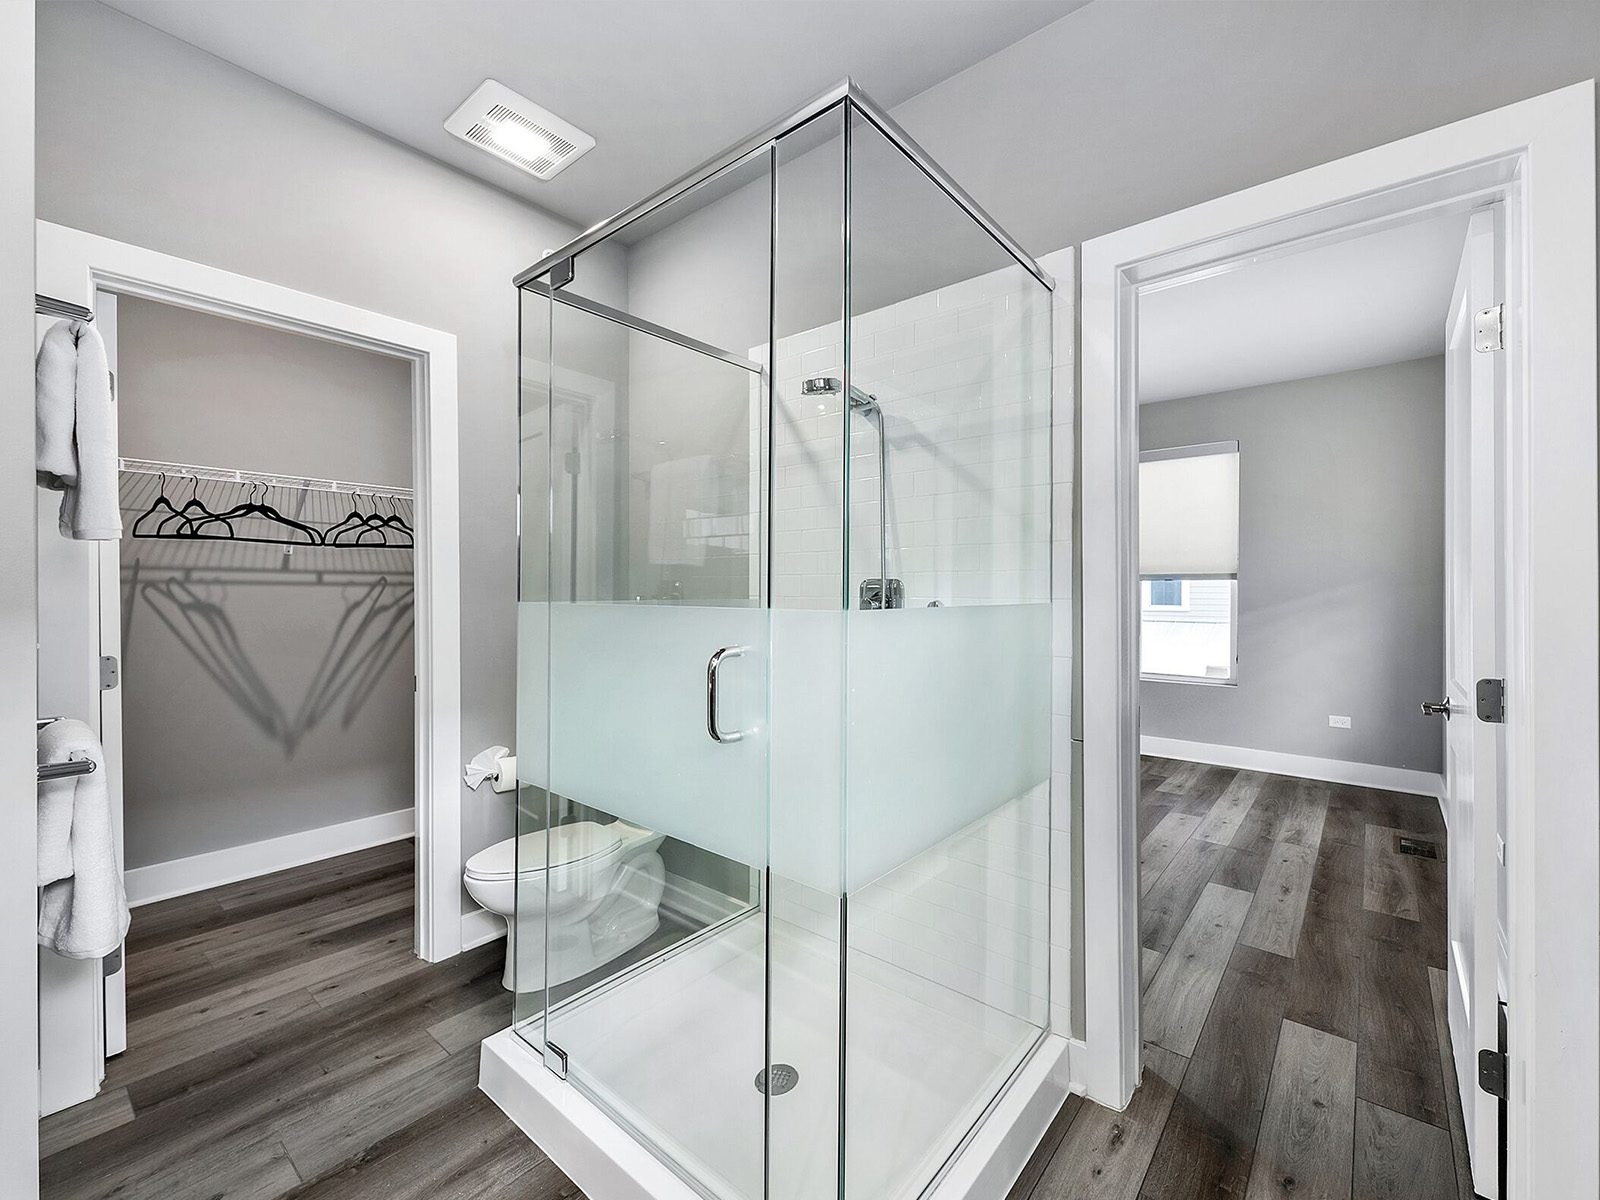 Town Square Bathroom Showing Walk in Shower